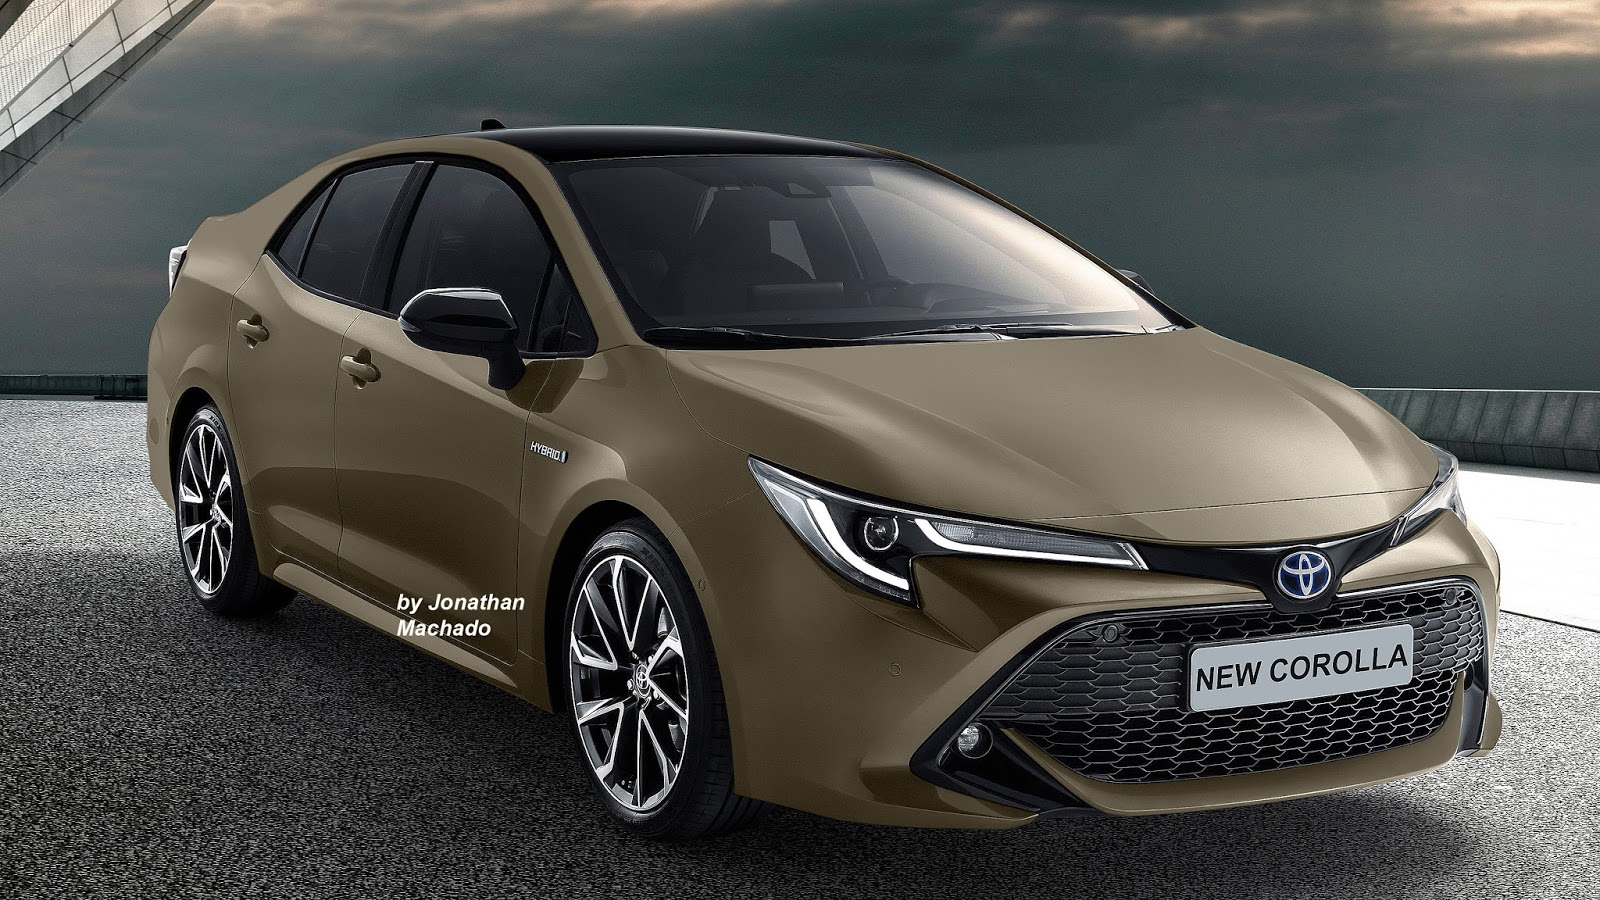 next-gen-2019-toyota-corolla-sedan-brown-pictures-photos-images